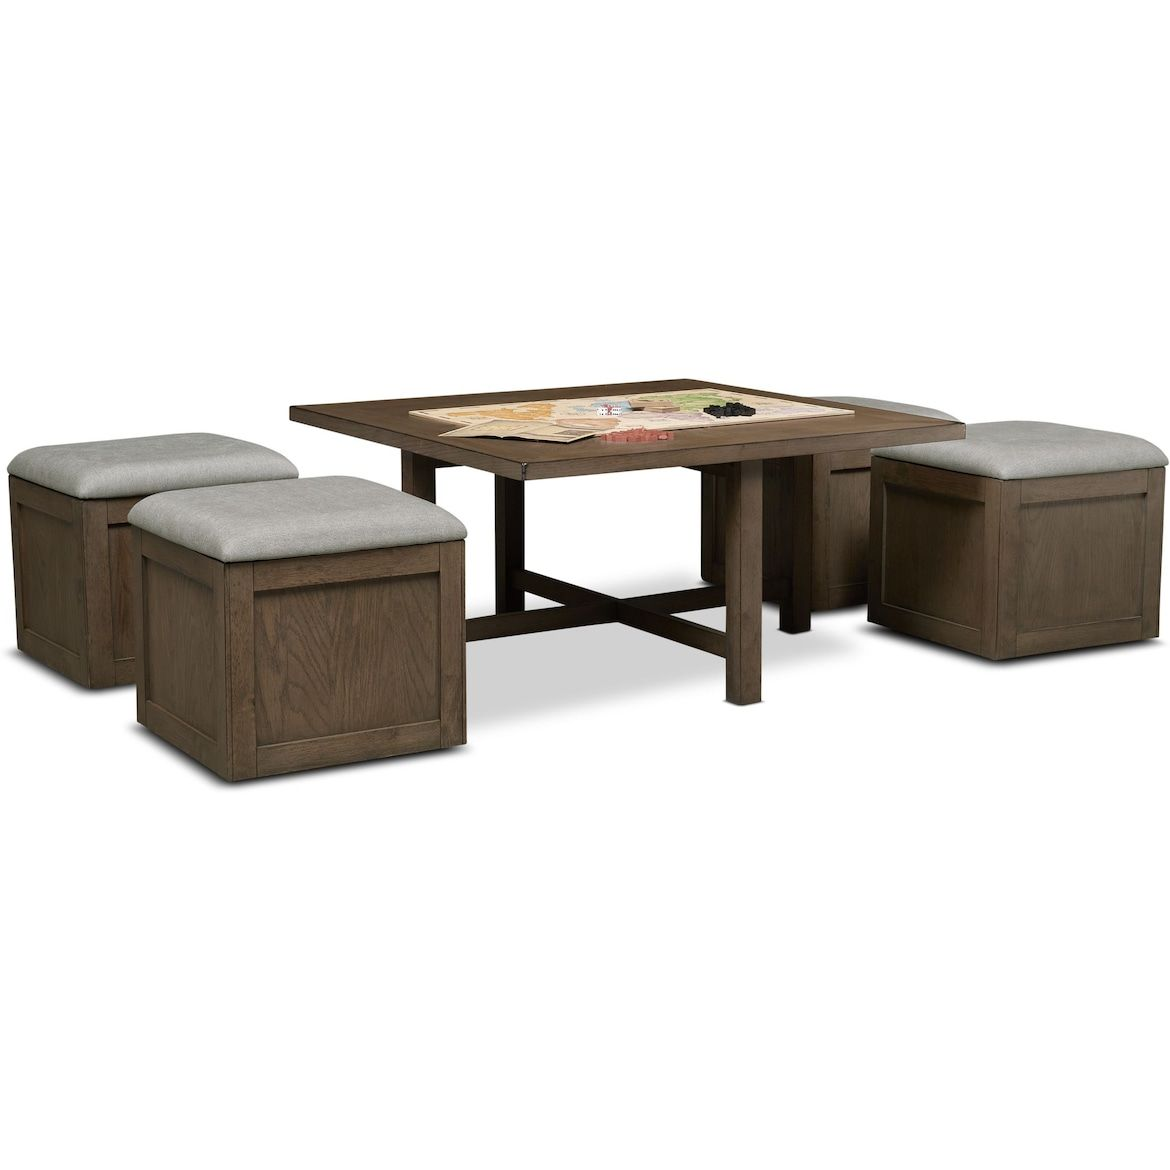 Jacob Coffee Table Value City Furniture And Mattresses Coffee Table Value City Furniture City Furniture [ 1170 x 1170 Pixel ]